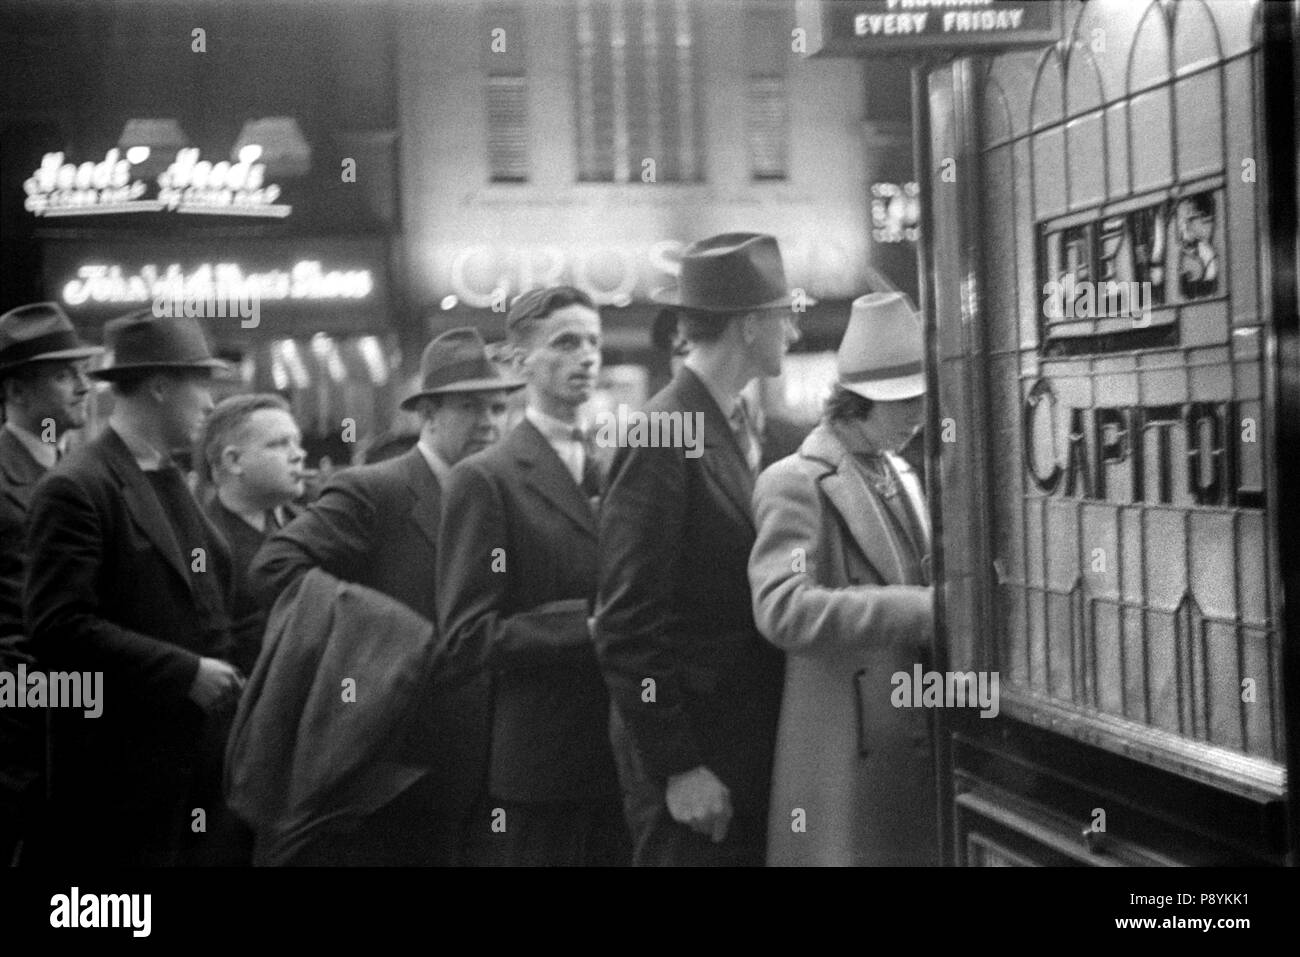 People Waiting in Line for Tickets, Loew's Capital Motion Picture, Theatre, Washington DC, USA, David Myers, Farm Security Administration, 1939 - Stock Image